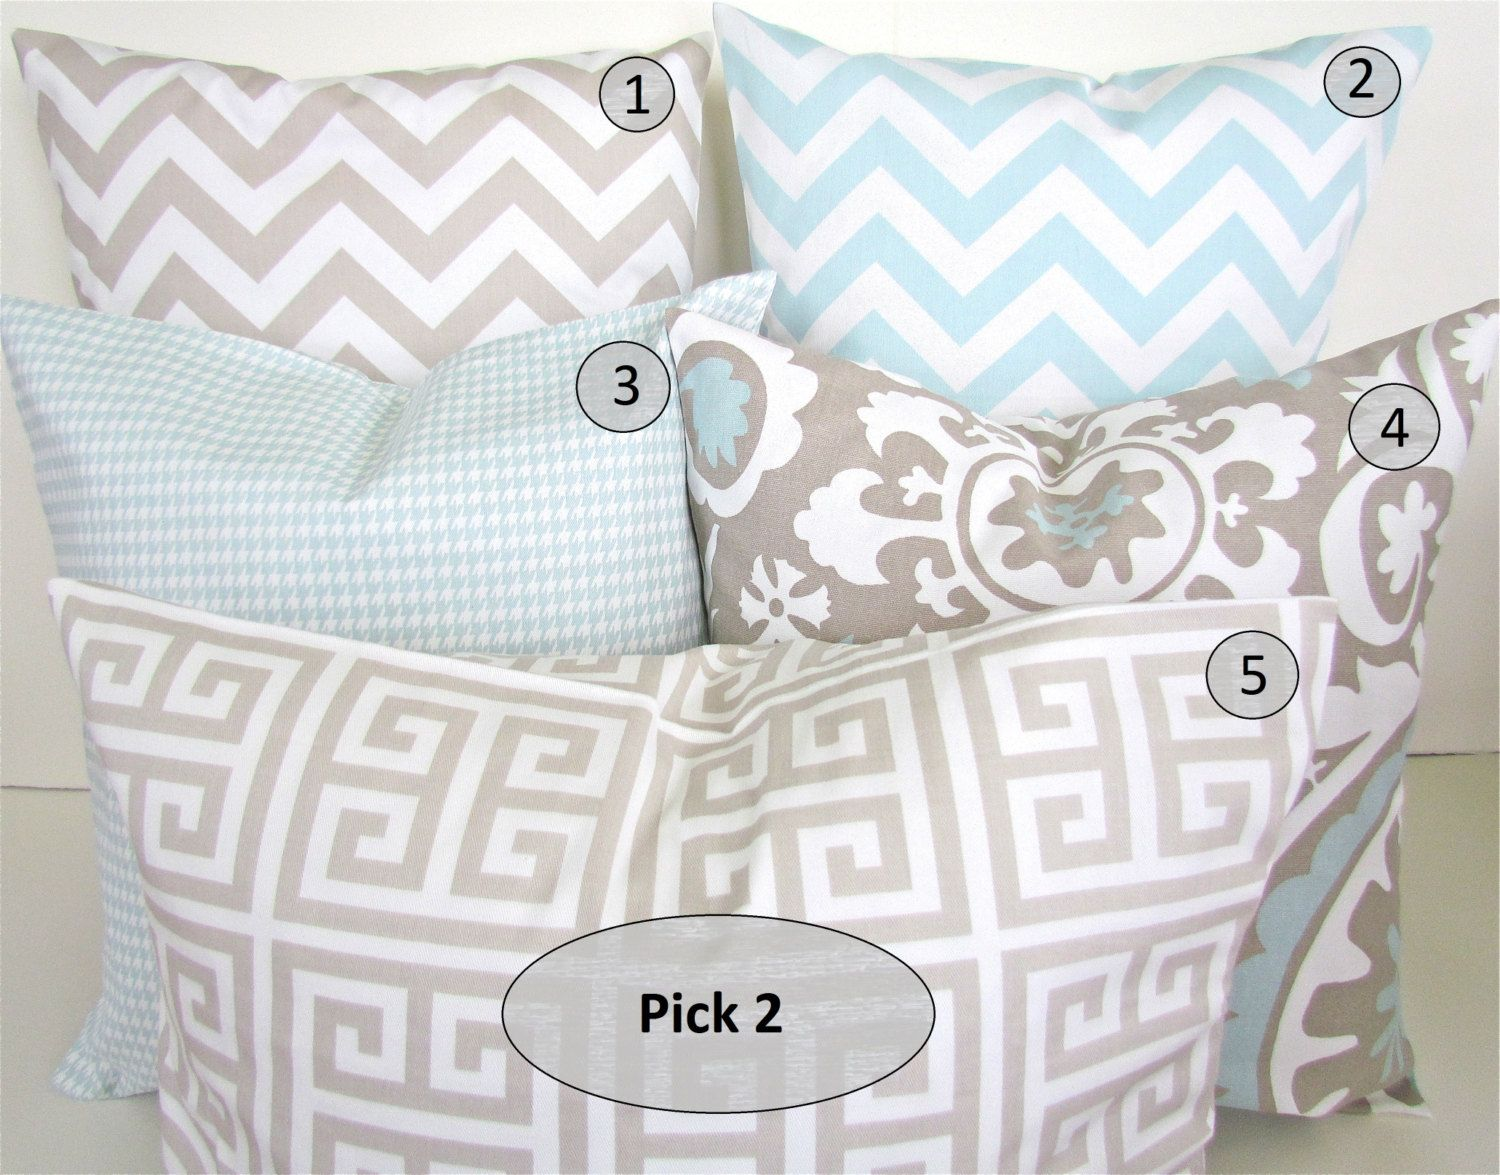 DECORATIVE PILLOWS Set Pick 2 TAN 16x20 or 12x20 Lumbar Blue